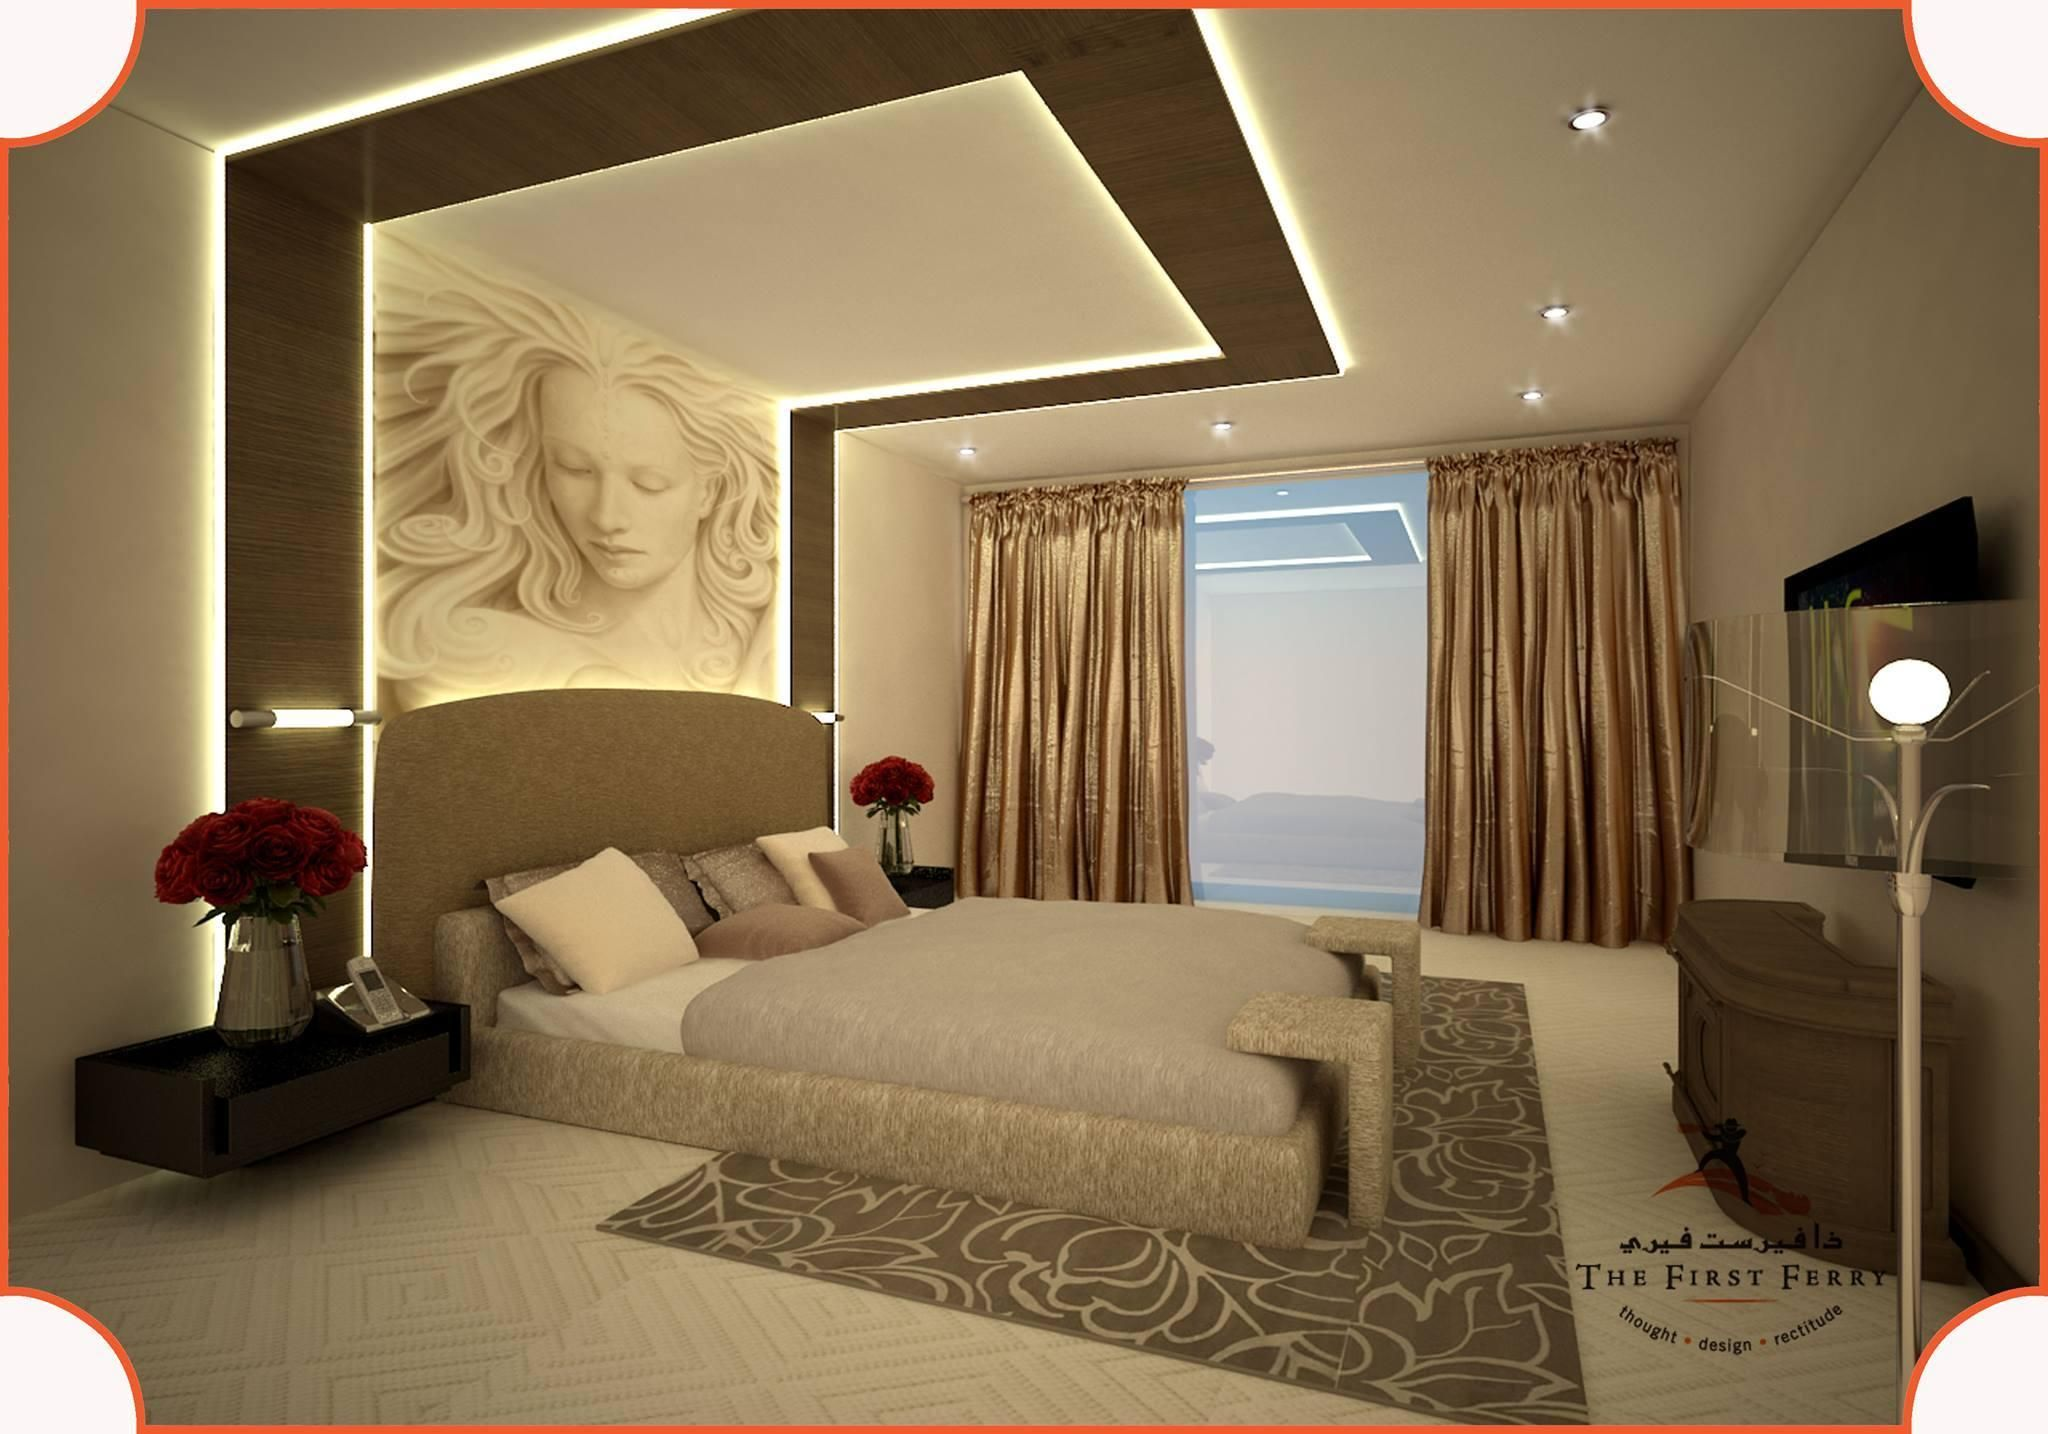 A luxury bedroom design by Artistry and